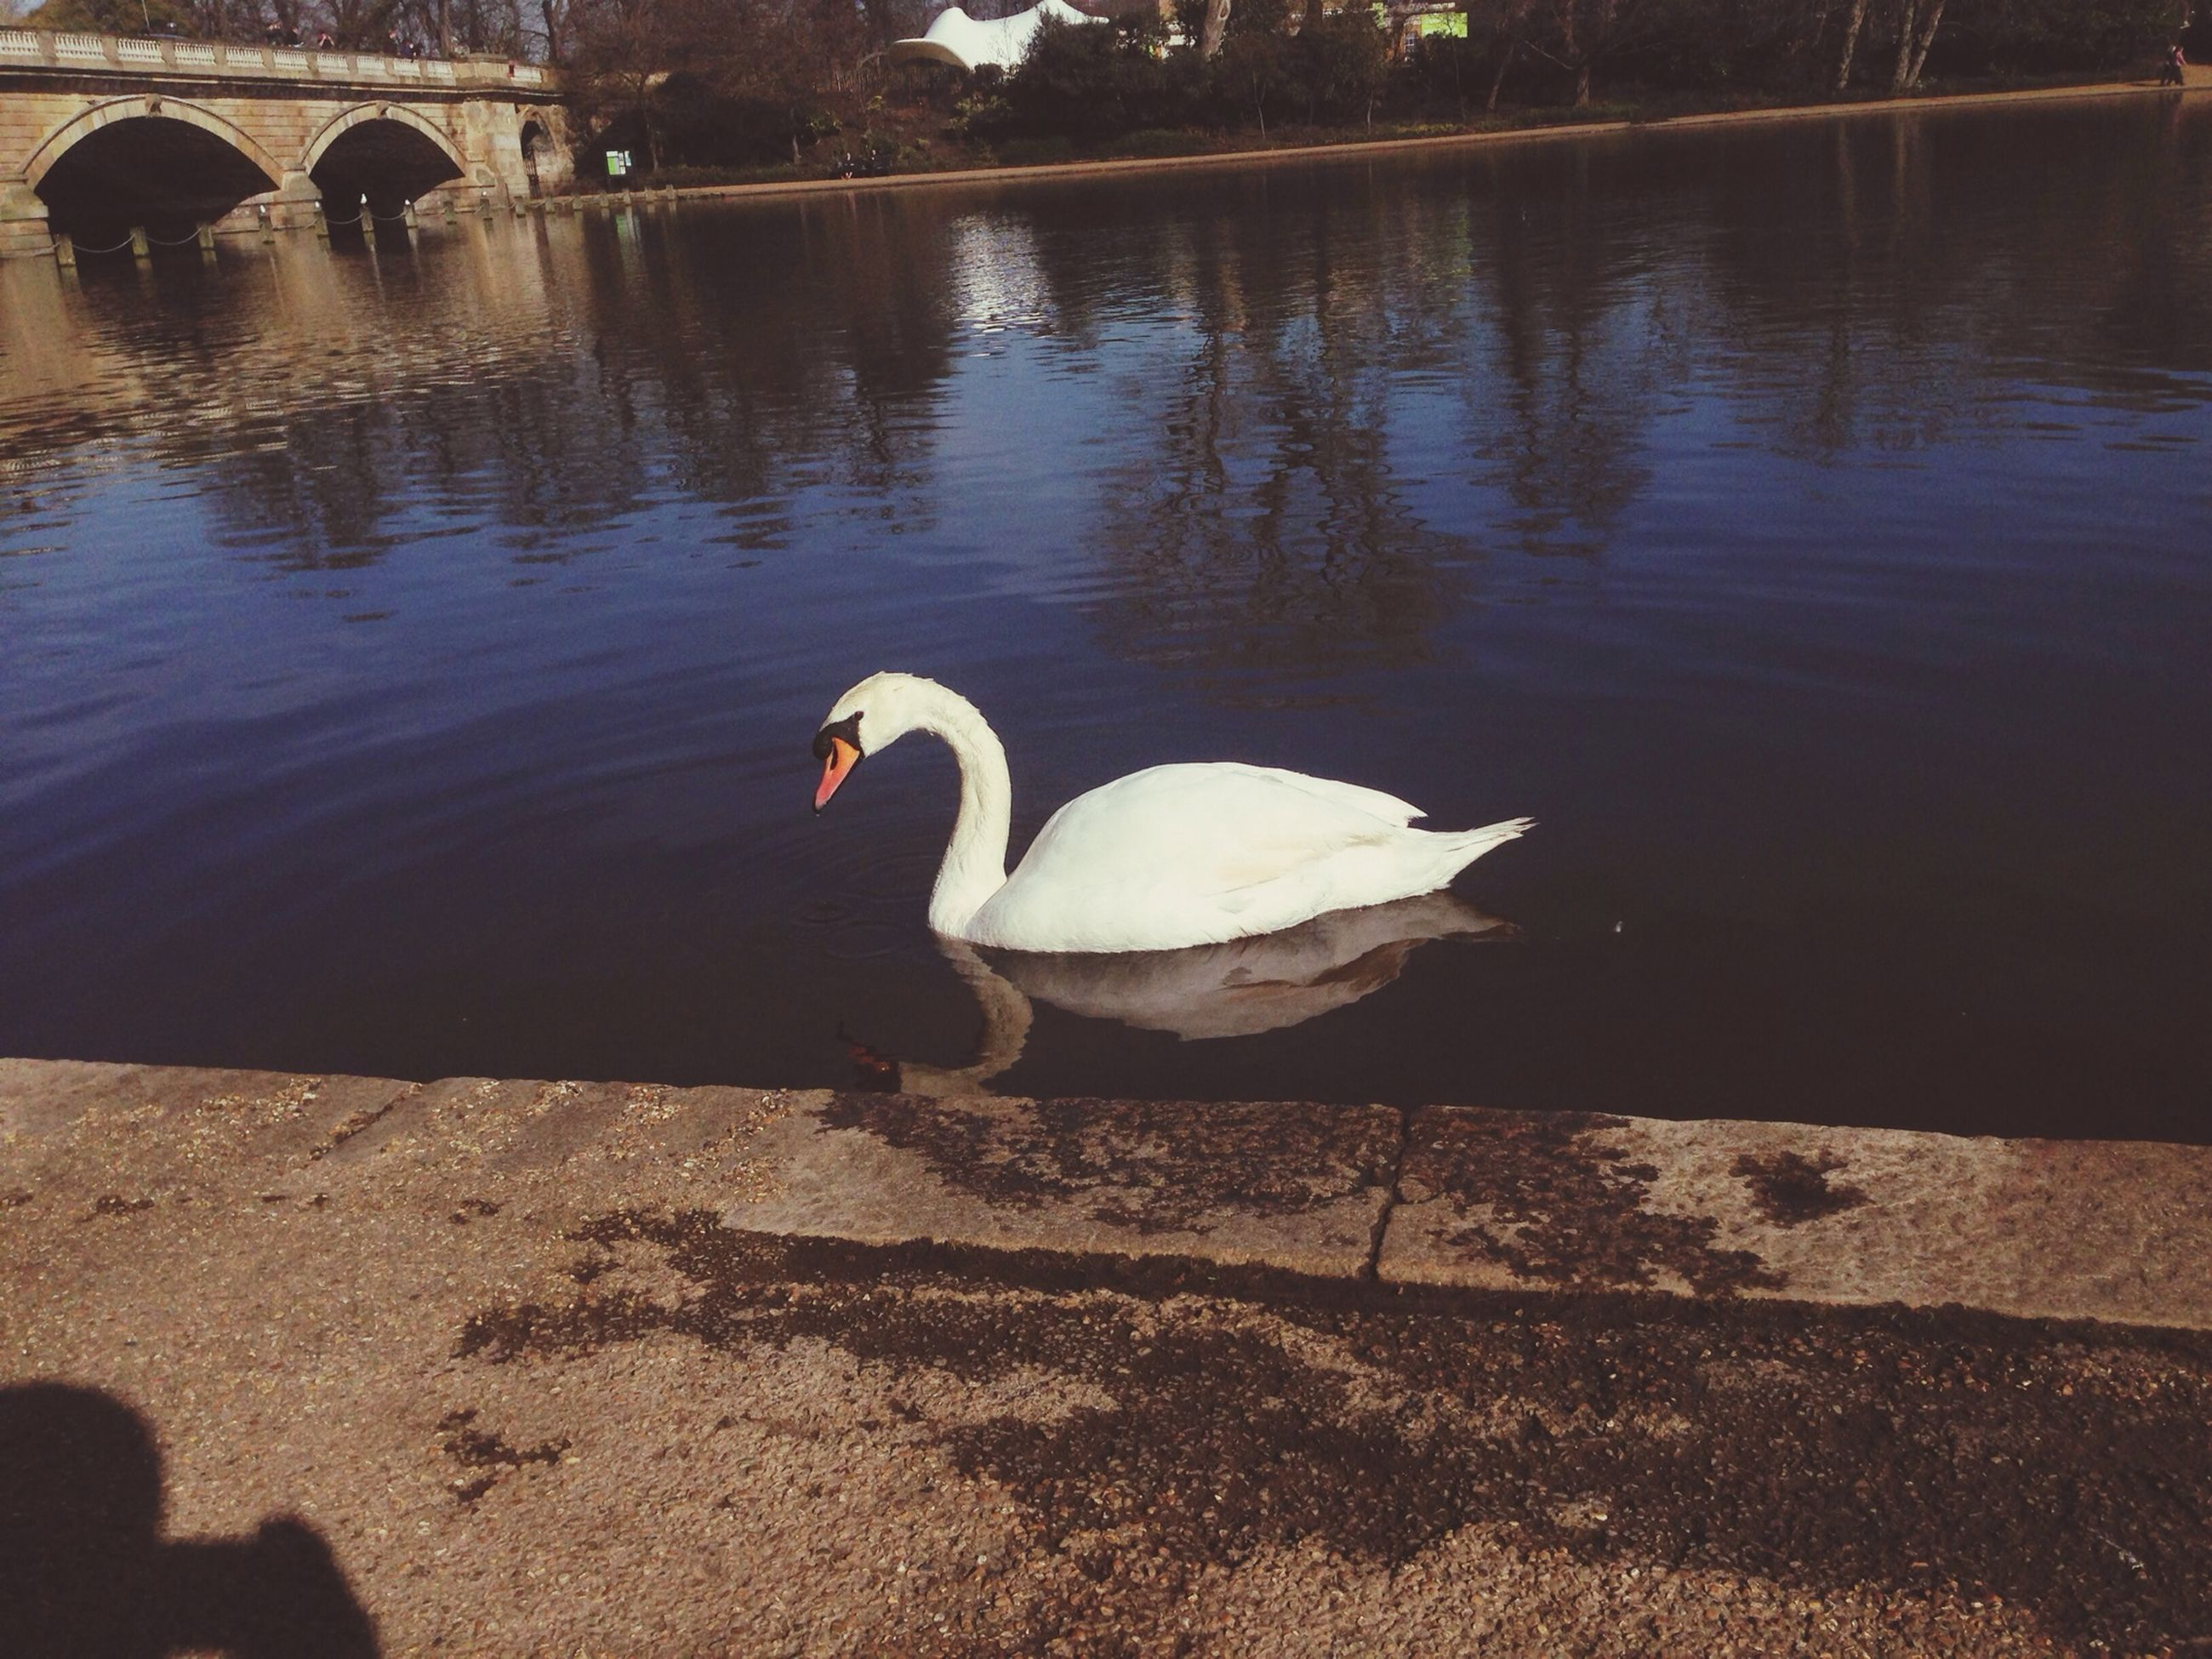 bird, animal themes, animals in the wild, wildlife, water, lake, swan, reflection, swimming, nature, one animal, water bird, duck, outdoors, beak, two animals, pond, no people, beauty in nature, rippled